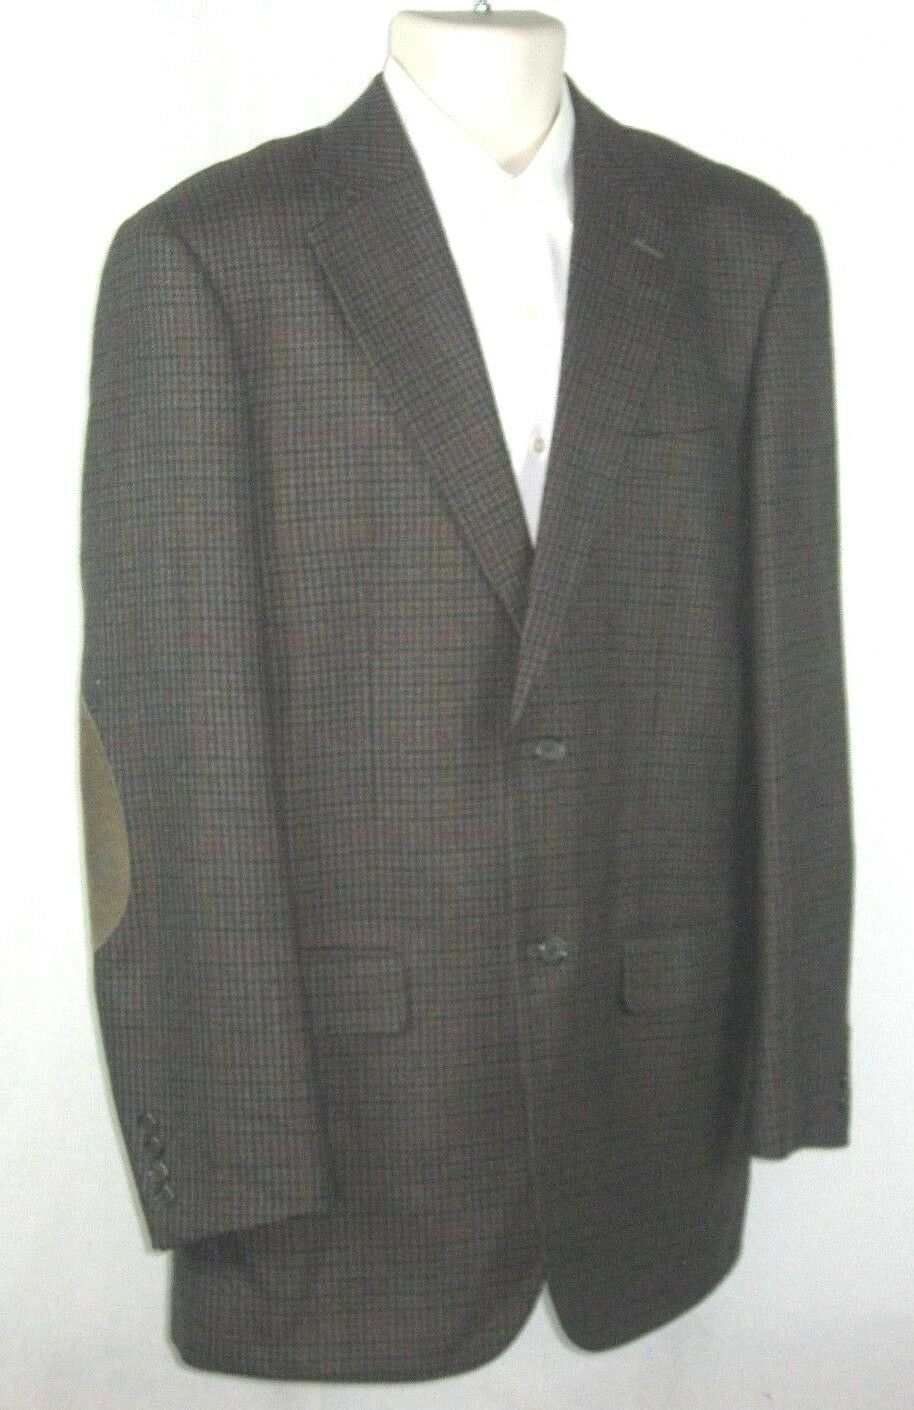 Tan Pendleton Houndstooth Tweed 42L Sport Coat Elbow Patches Leder EUC